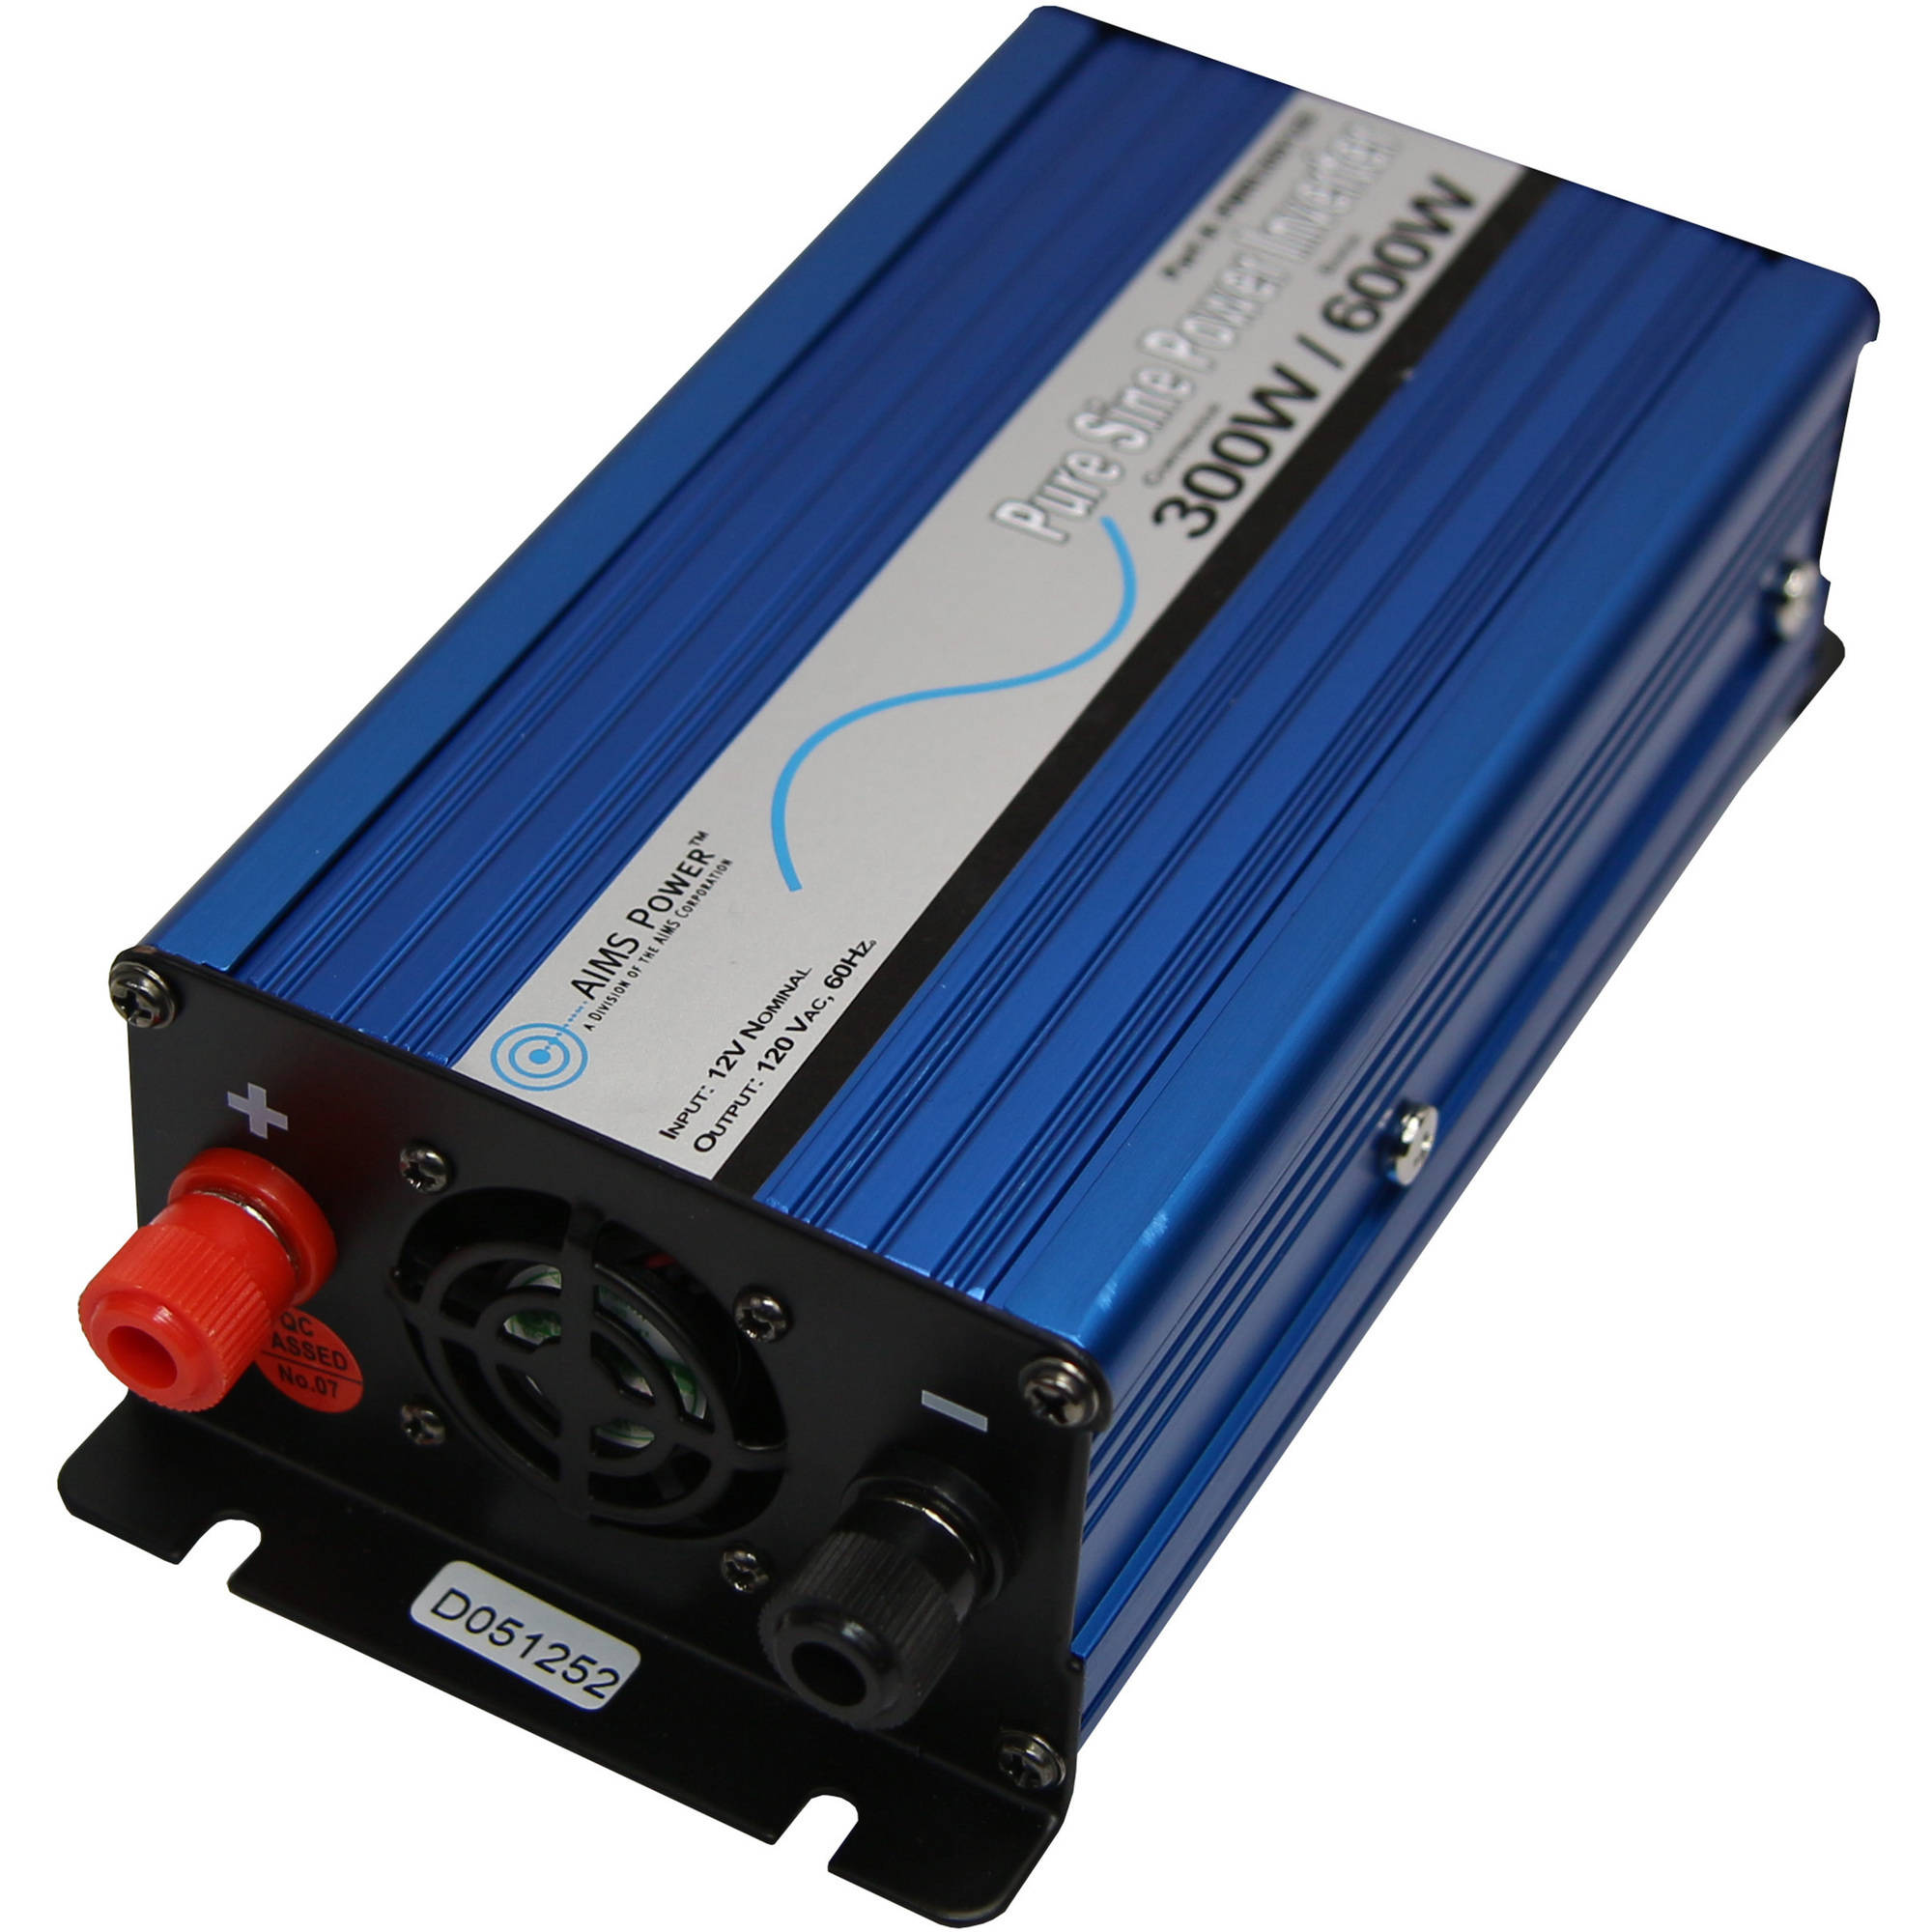 AIMS Power 300 Watt 12 Volt Pure Sine Inverter with Cables